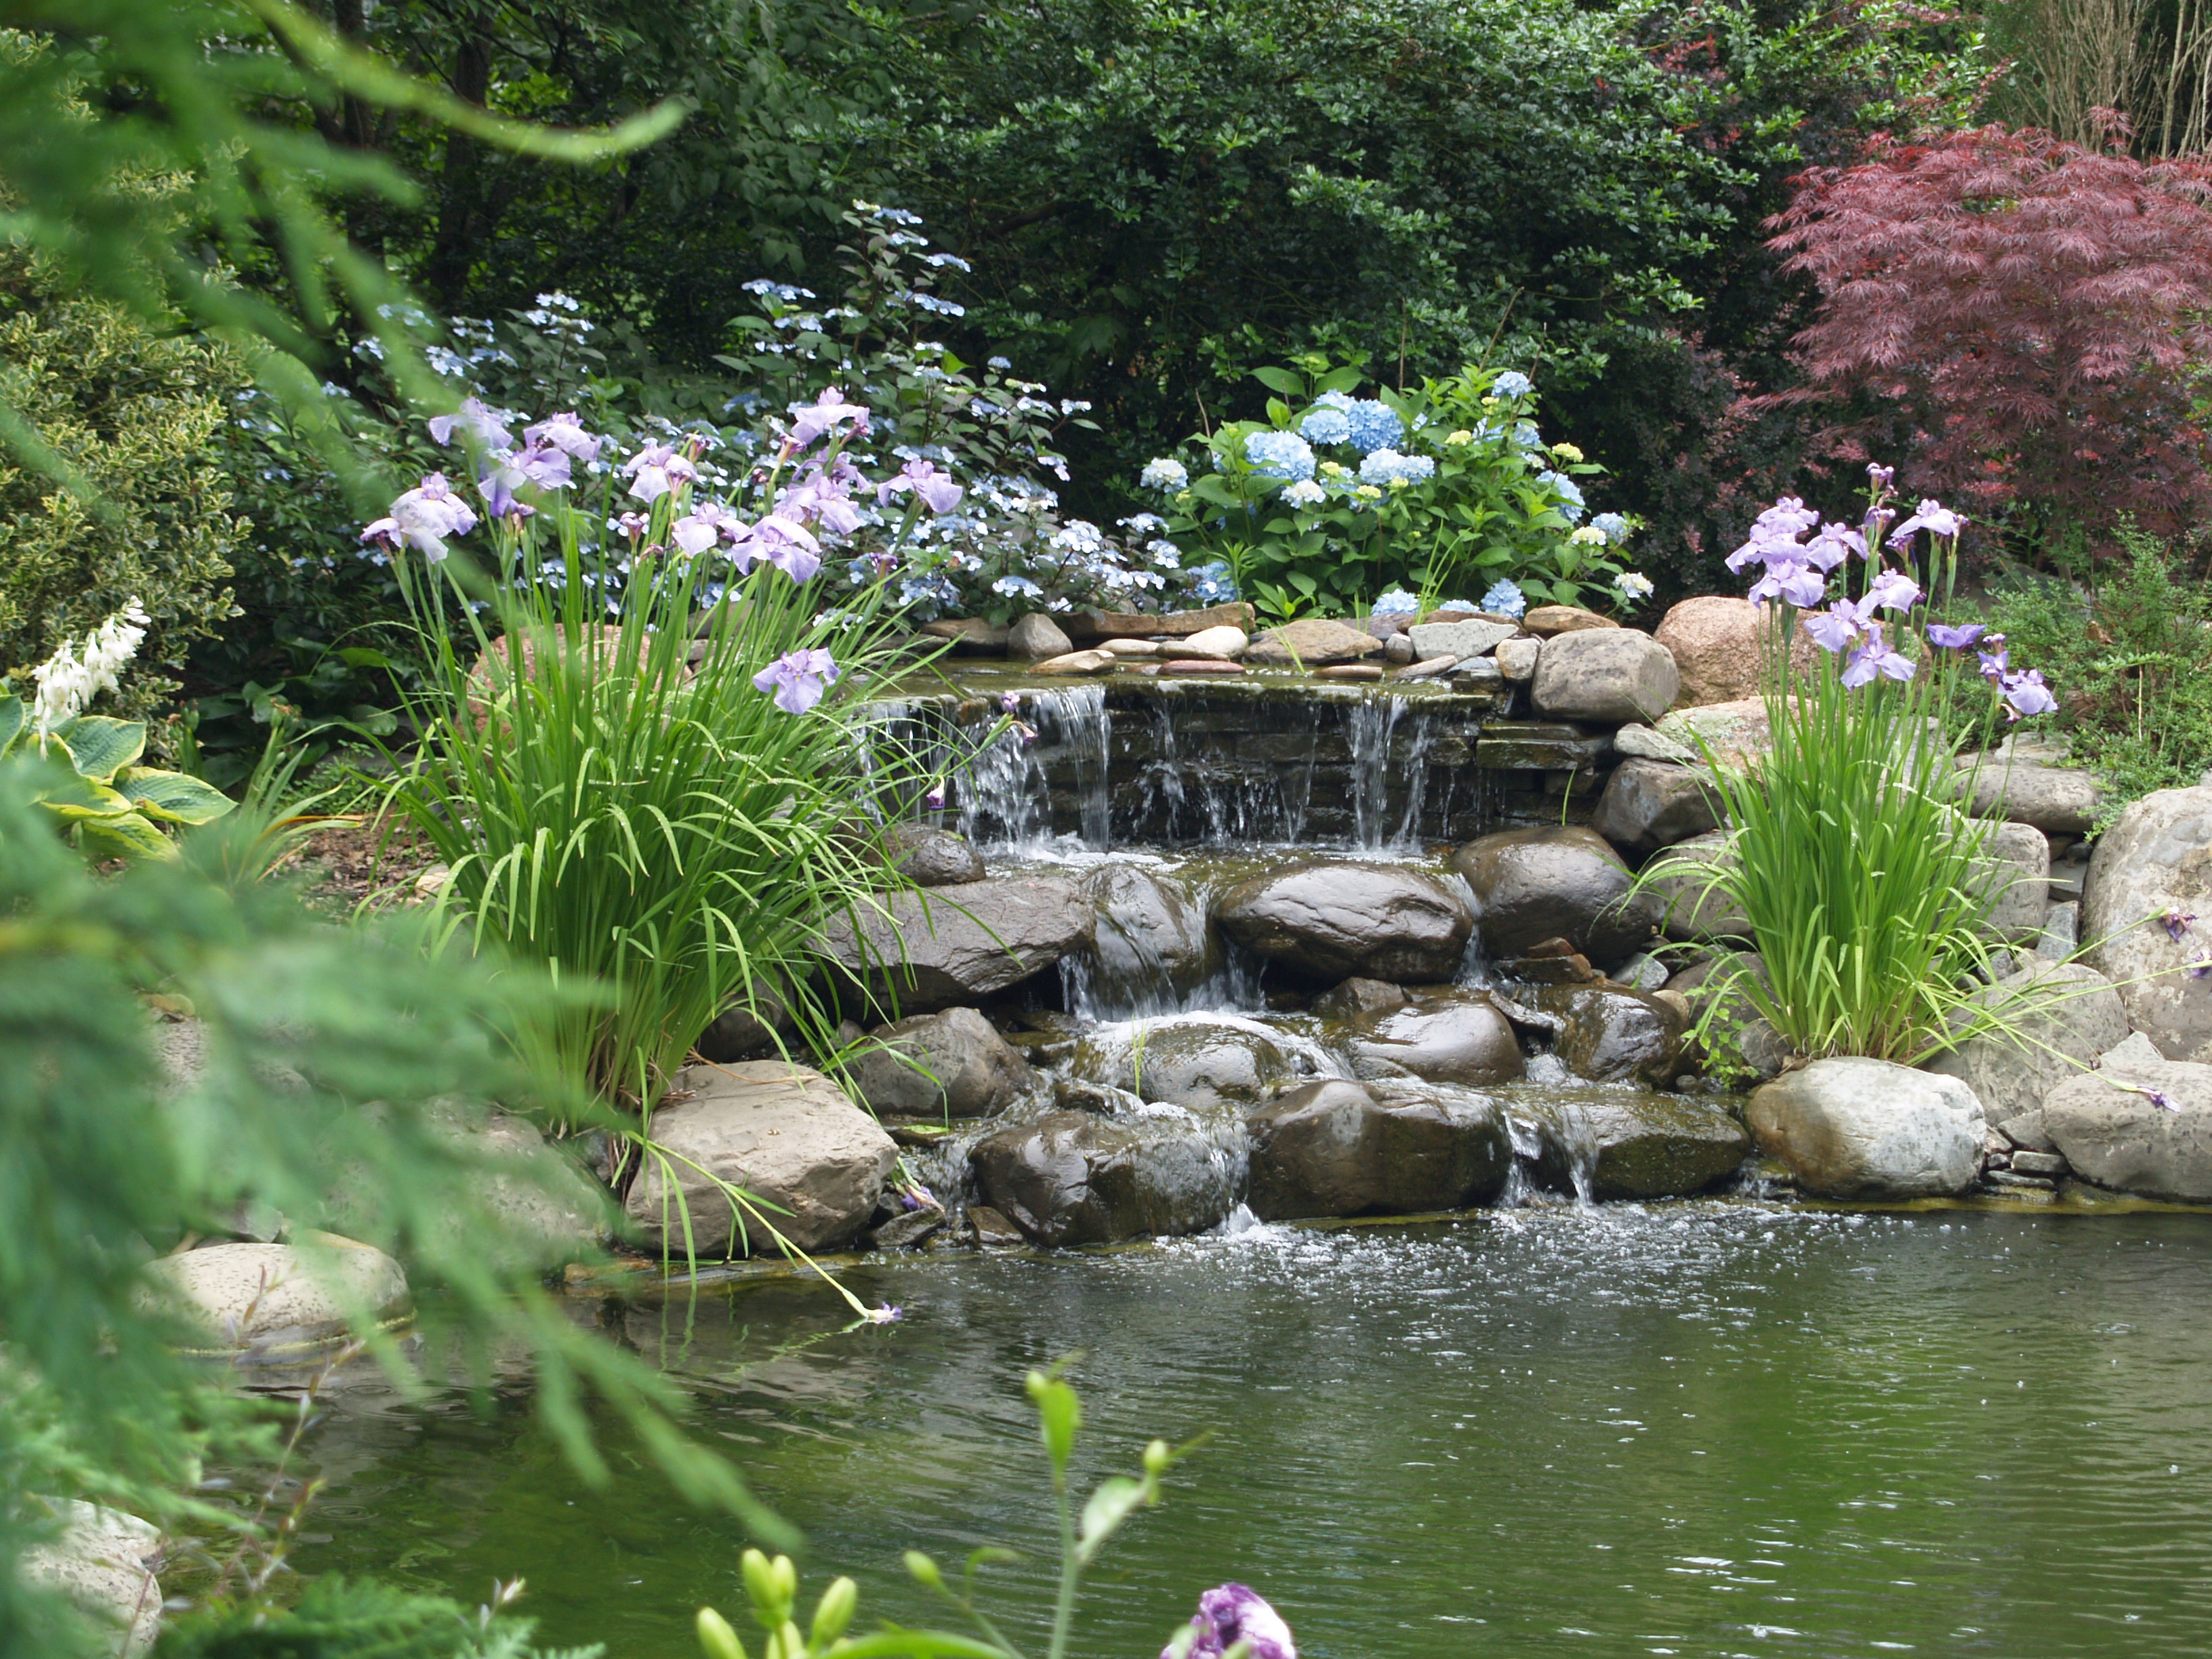 Garden ponds are a delight ramblin 39 through dave 39 s garden for Garden pond water features